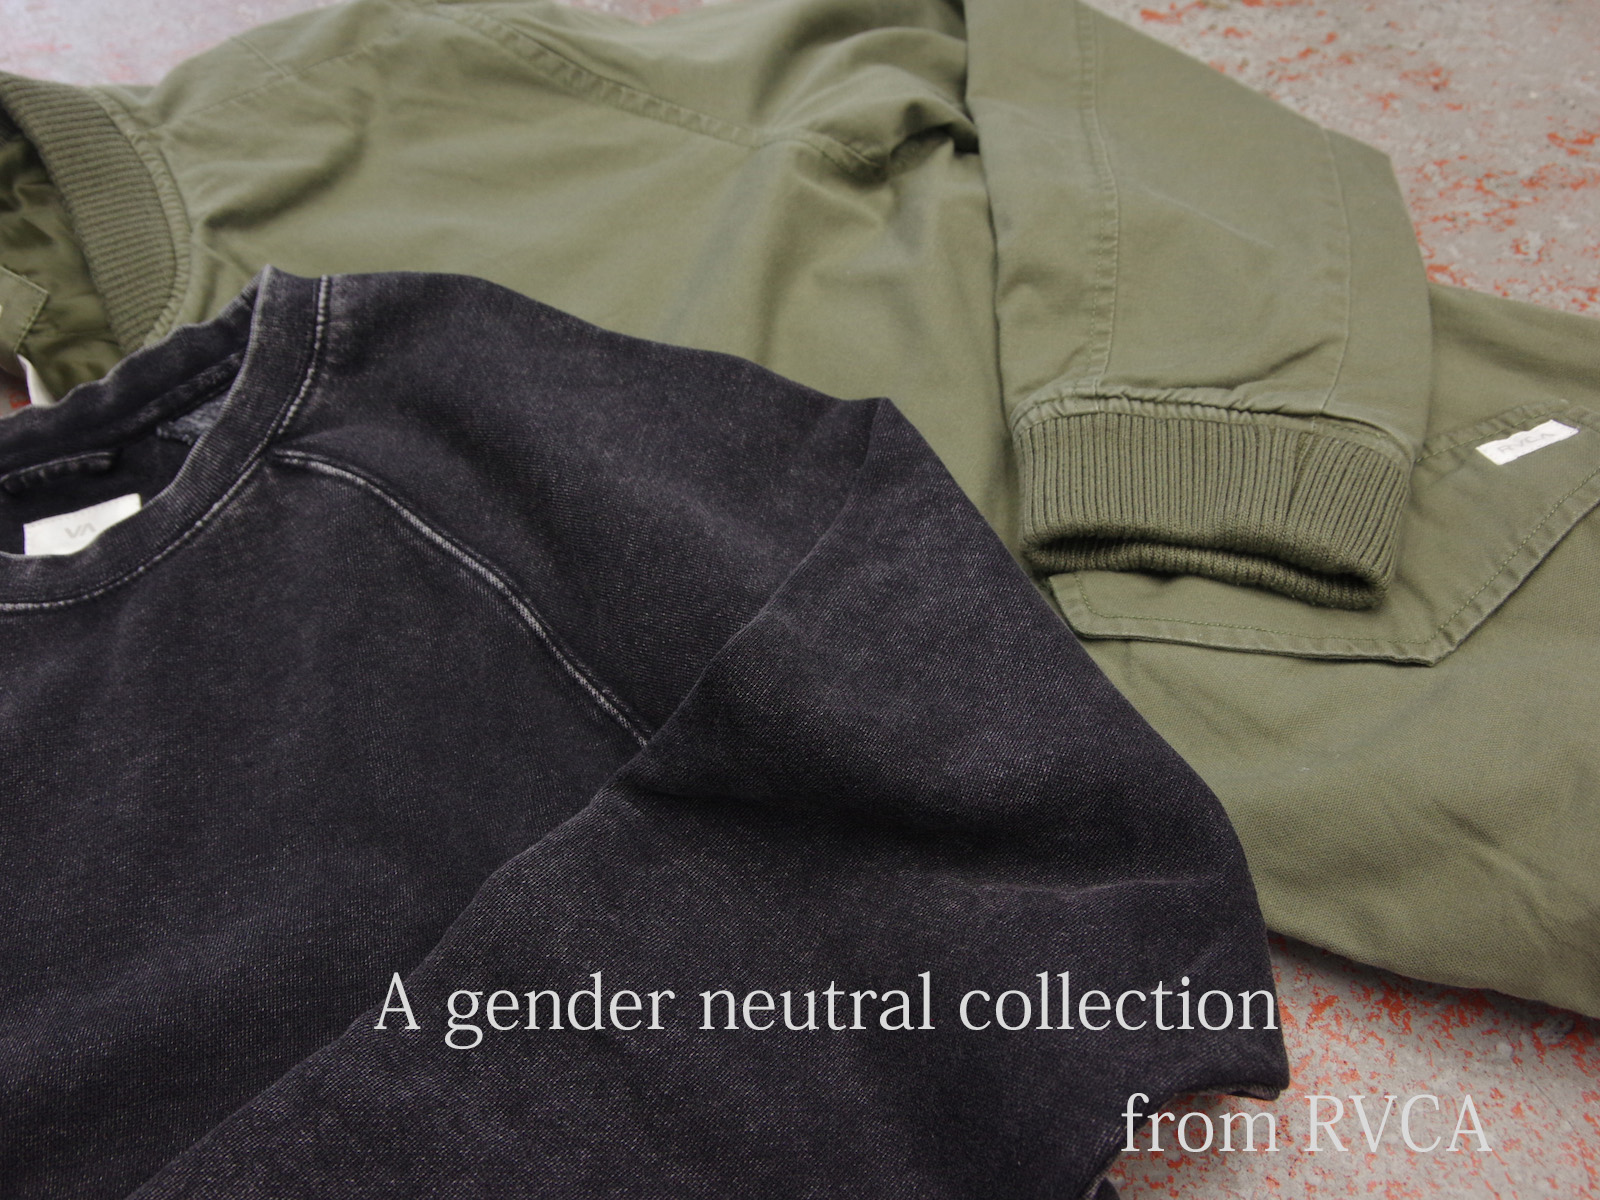 A GENDER NEUTRAL COLLECTION from RVCA